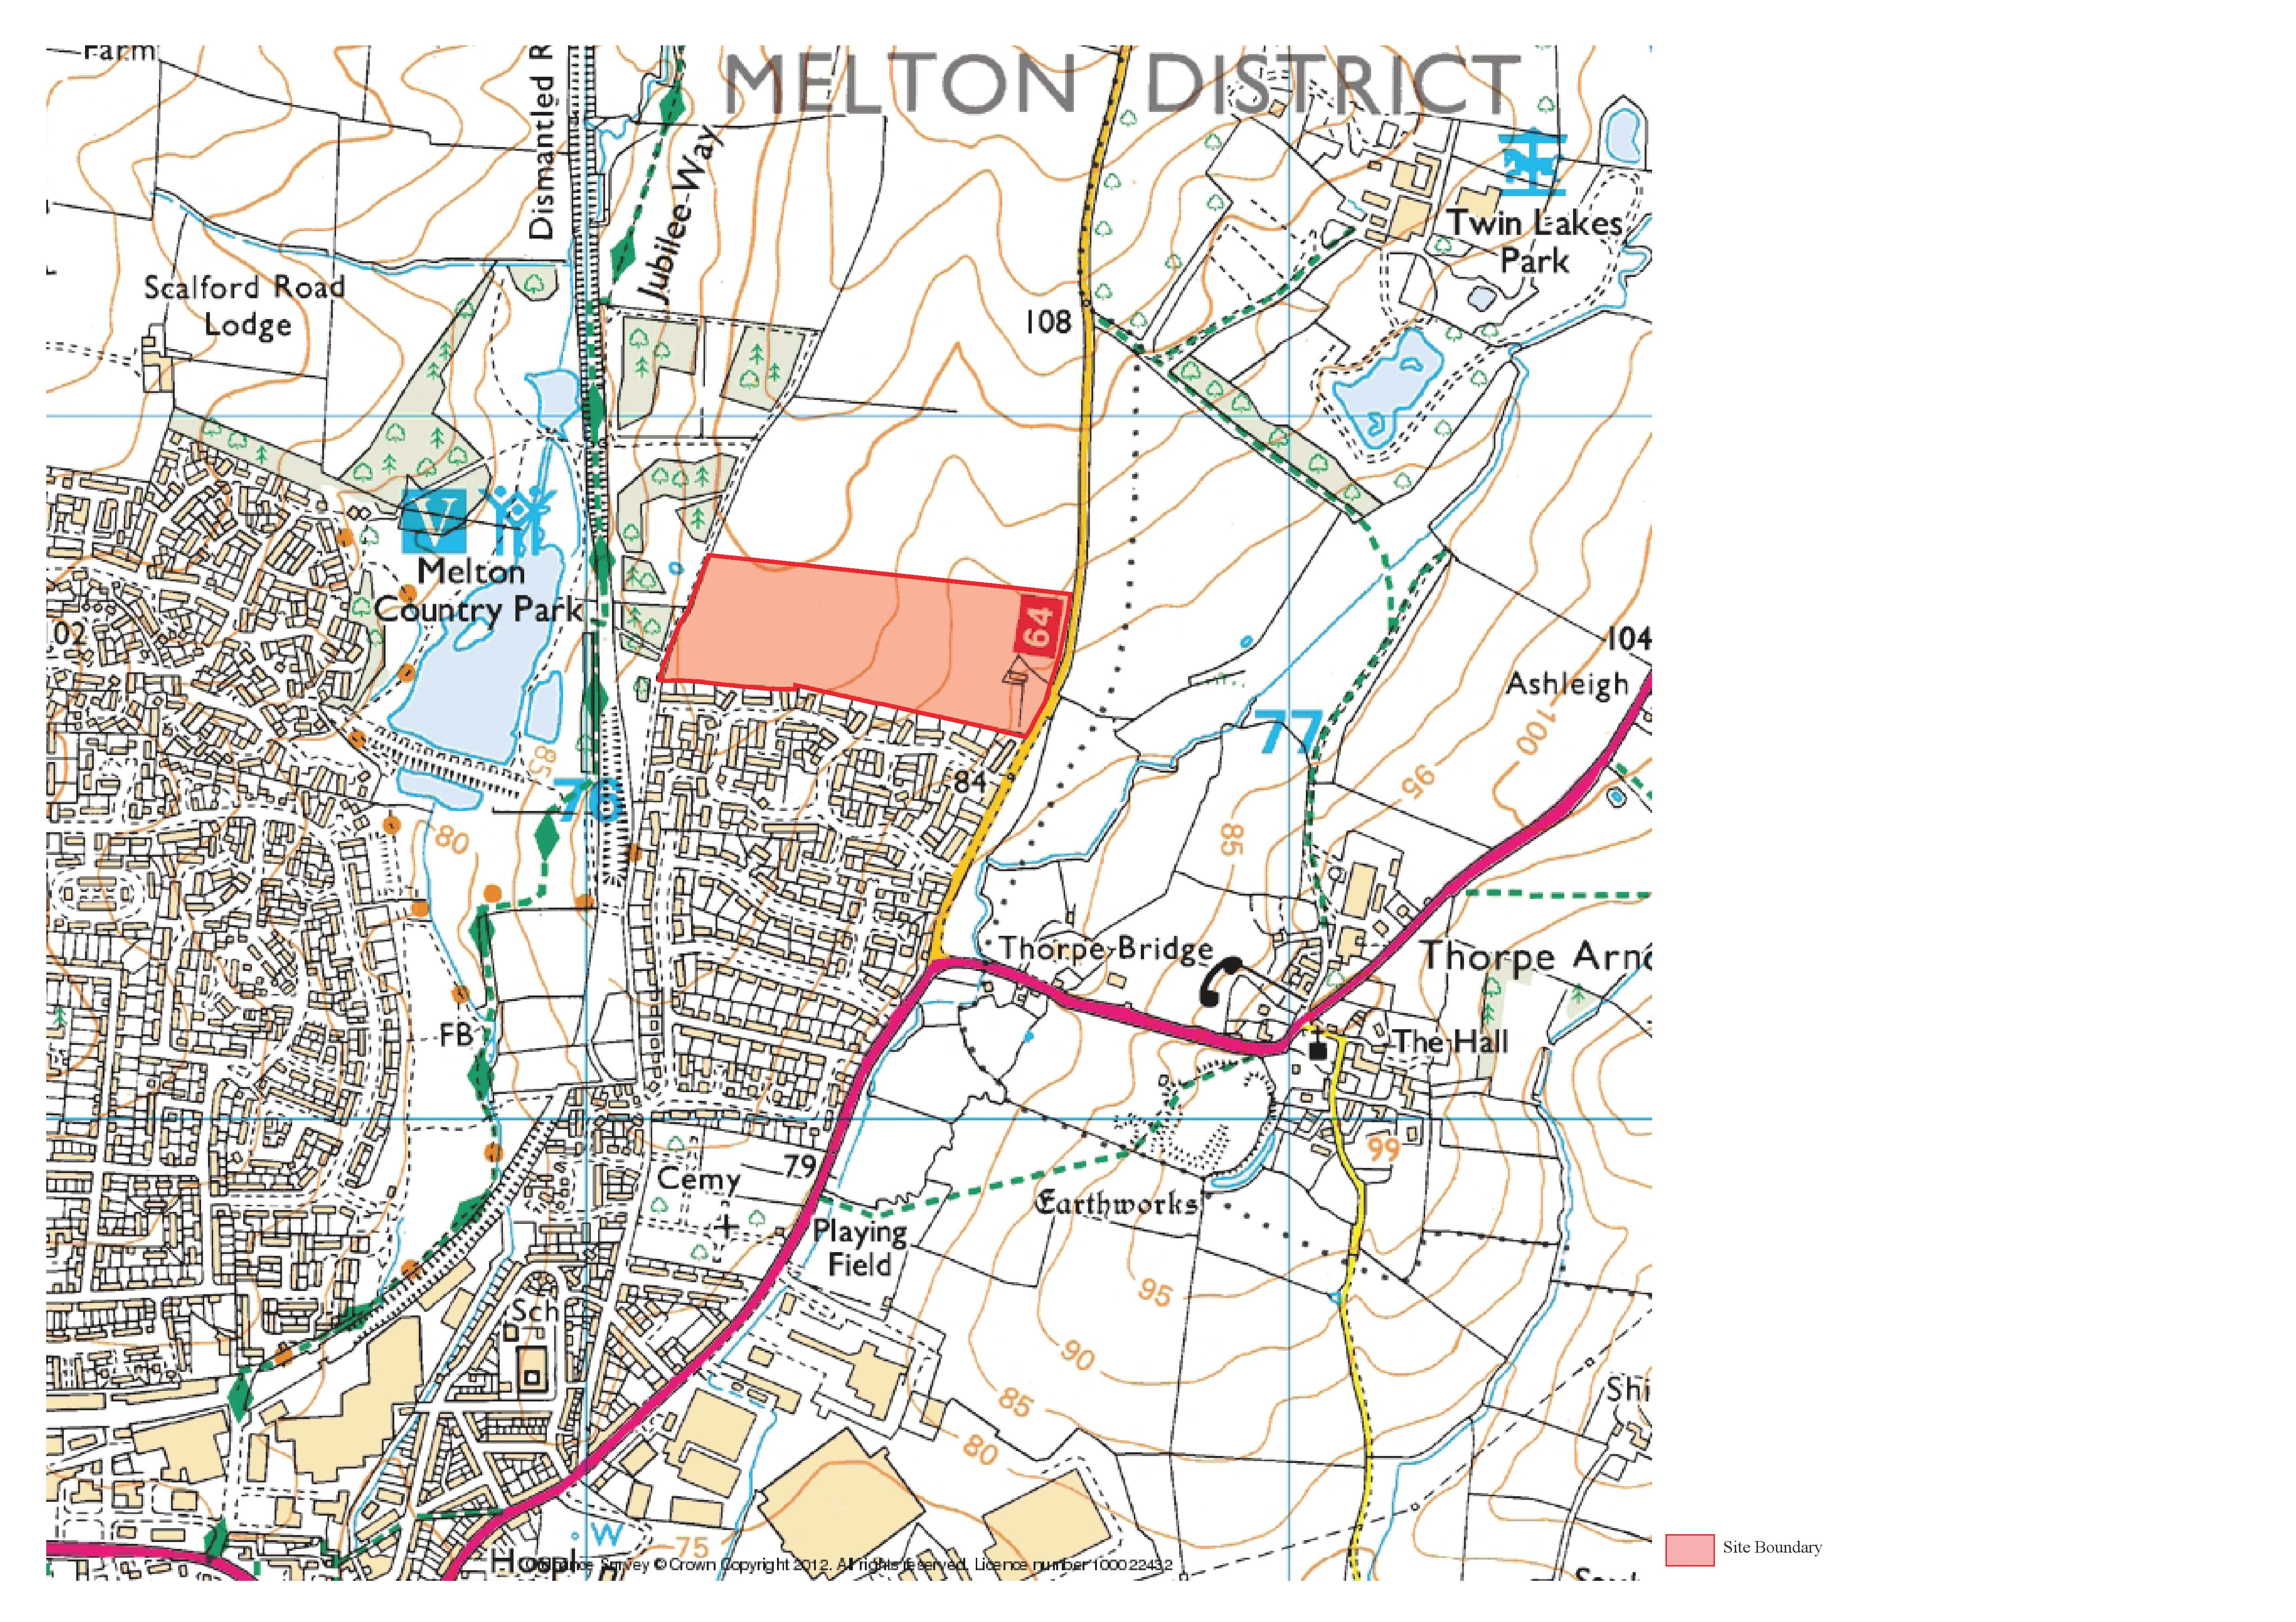 Melton Updated Red Line Boundary 19-9-14